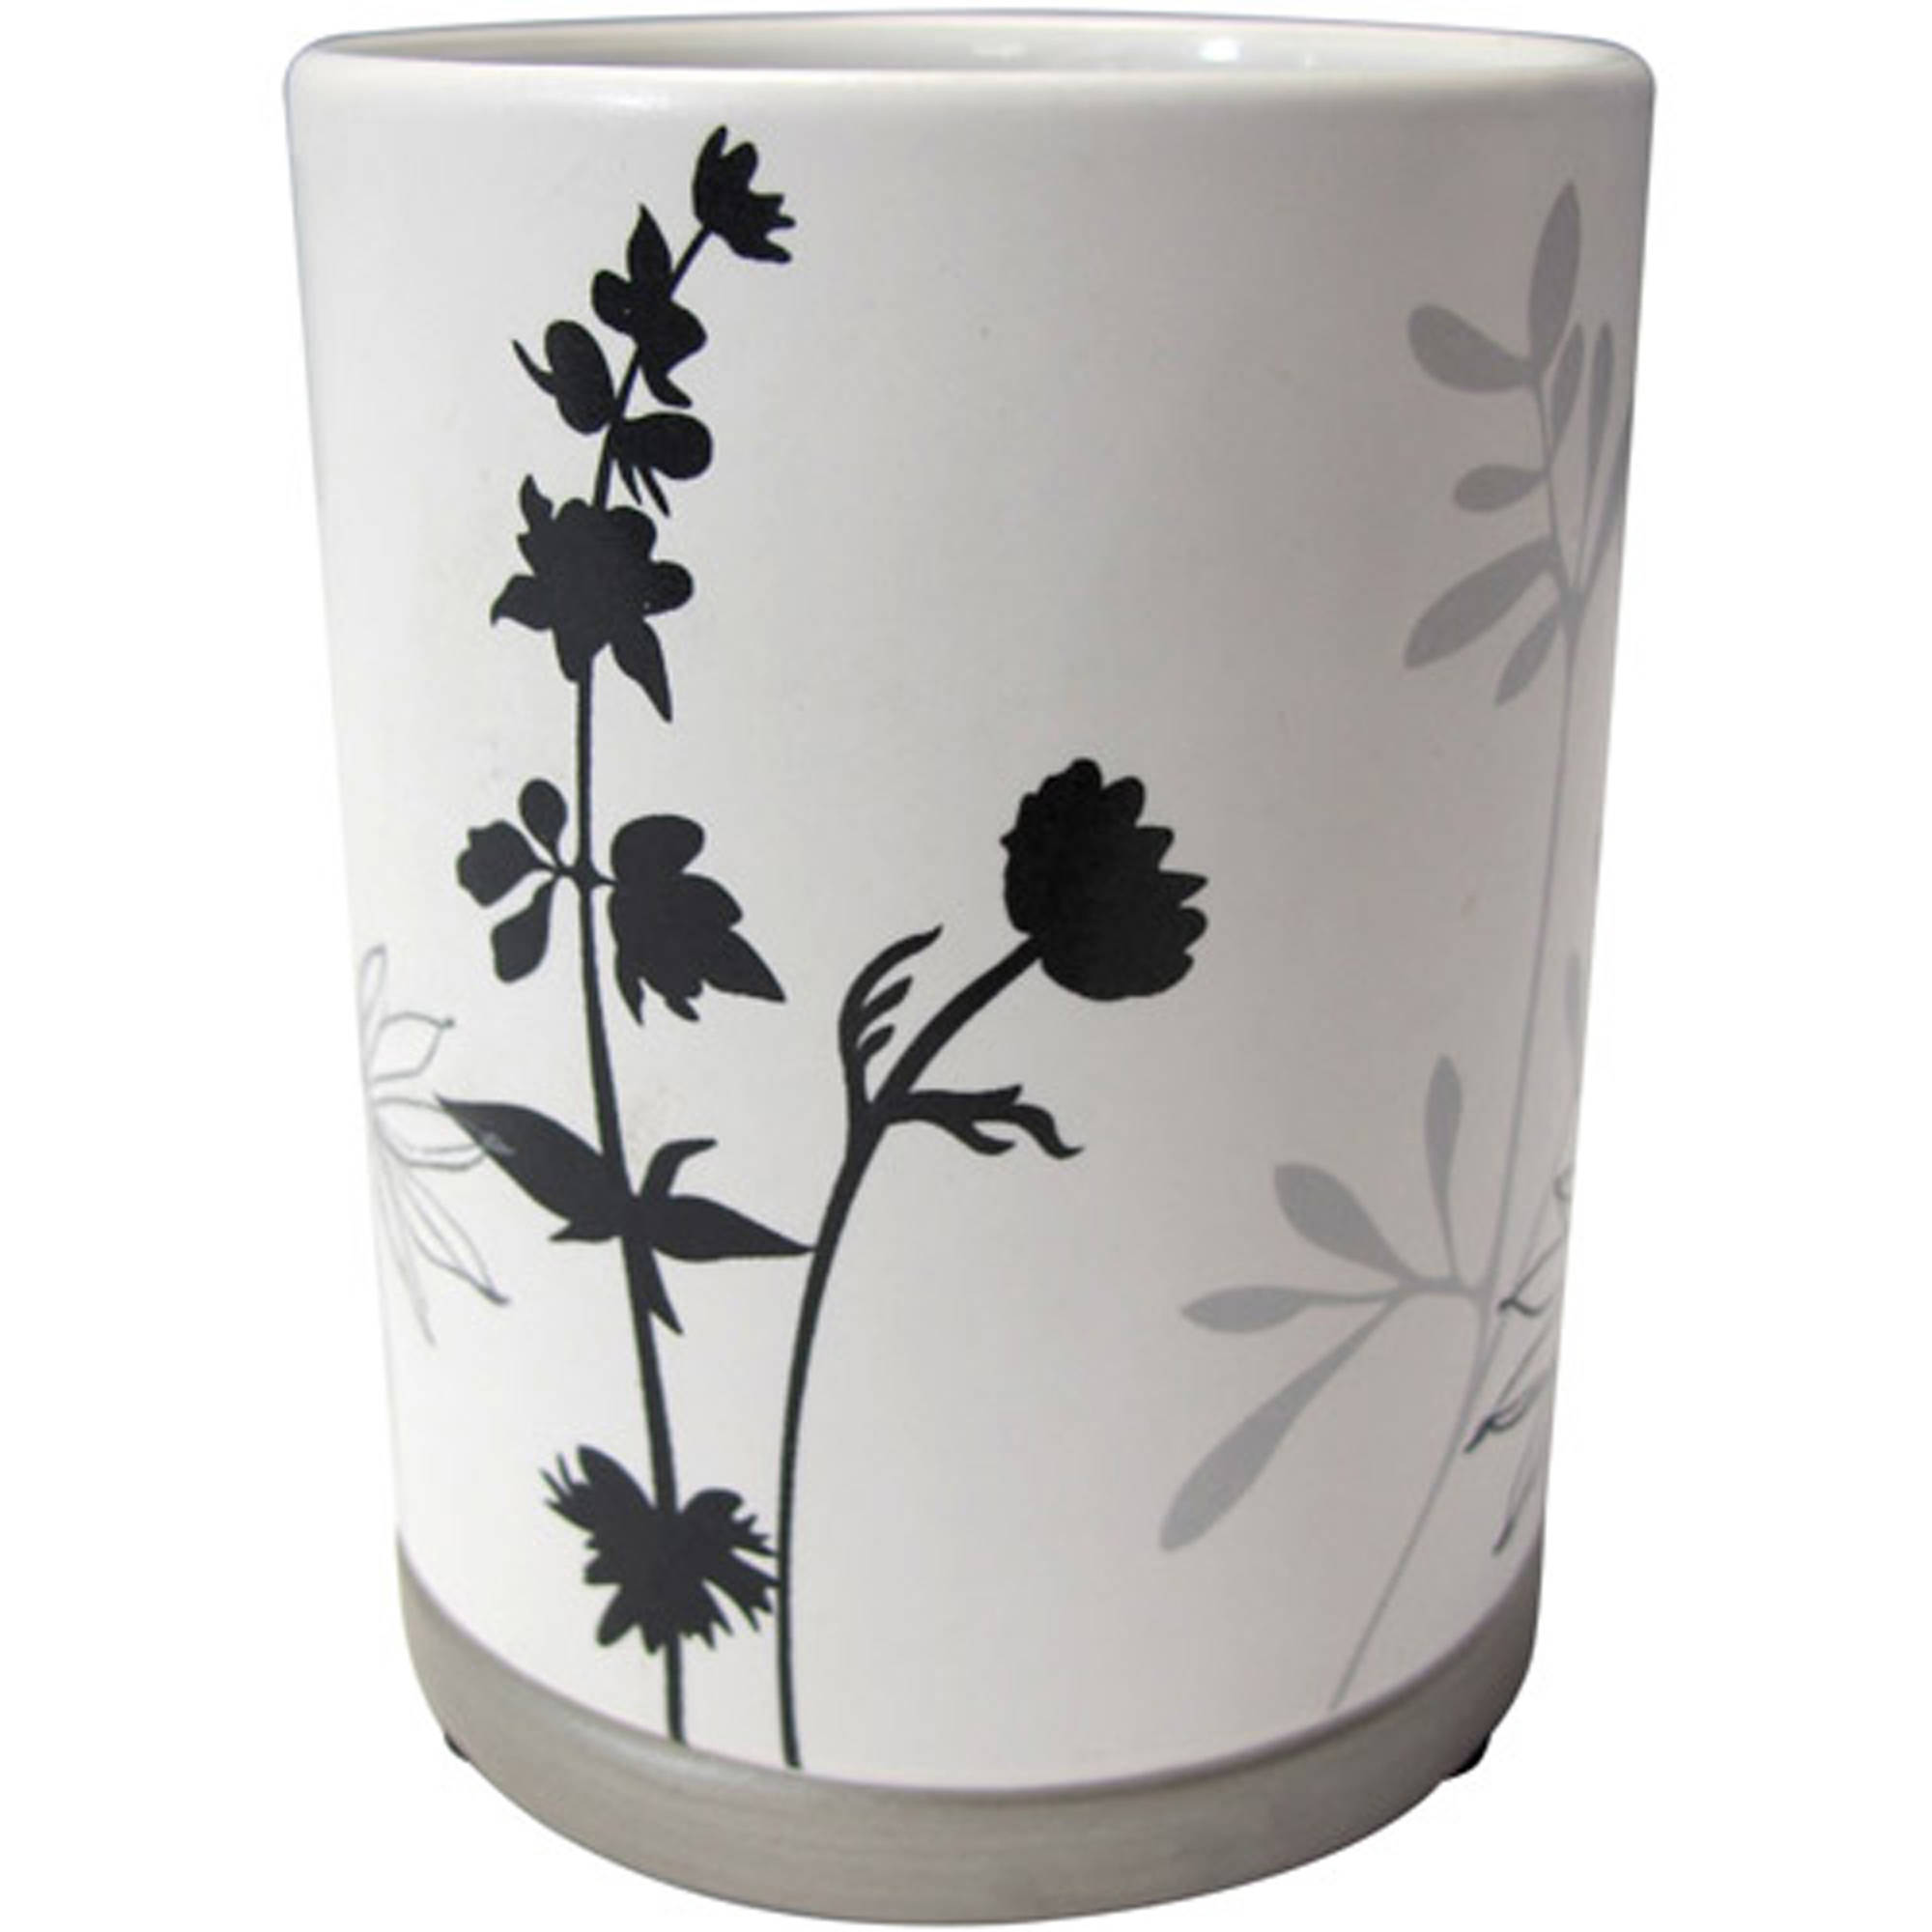 Better Homes and Gardens Tranquil Leaves Decorative Bath Collection - Tumbler